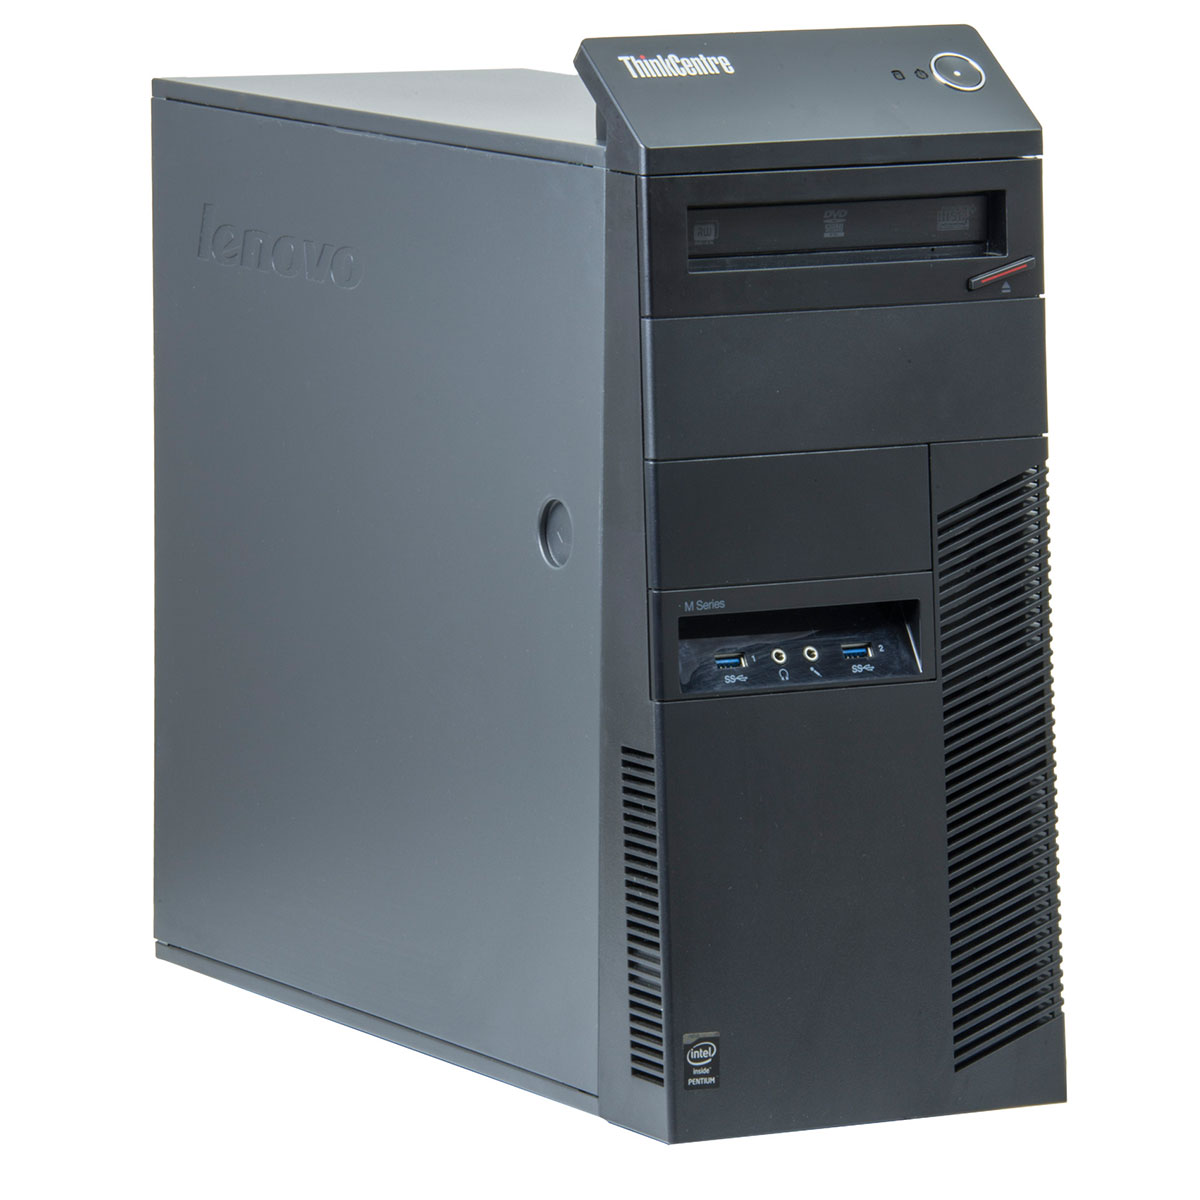 Lenovo ThinkCentre M83 Intel Core i7-4790K 4.00GHz  8GB DDR3  256GB SSD  DVD-ROM  Tower  calculator refurbished